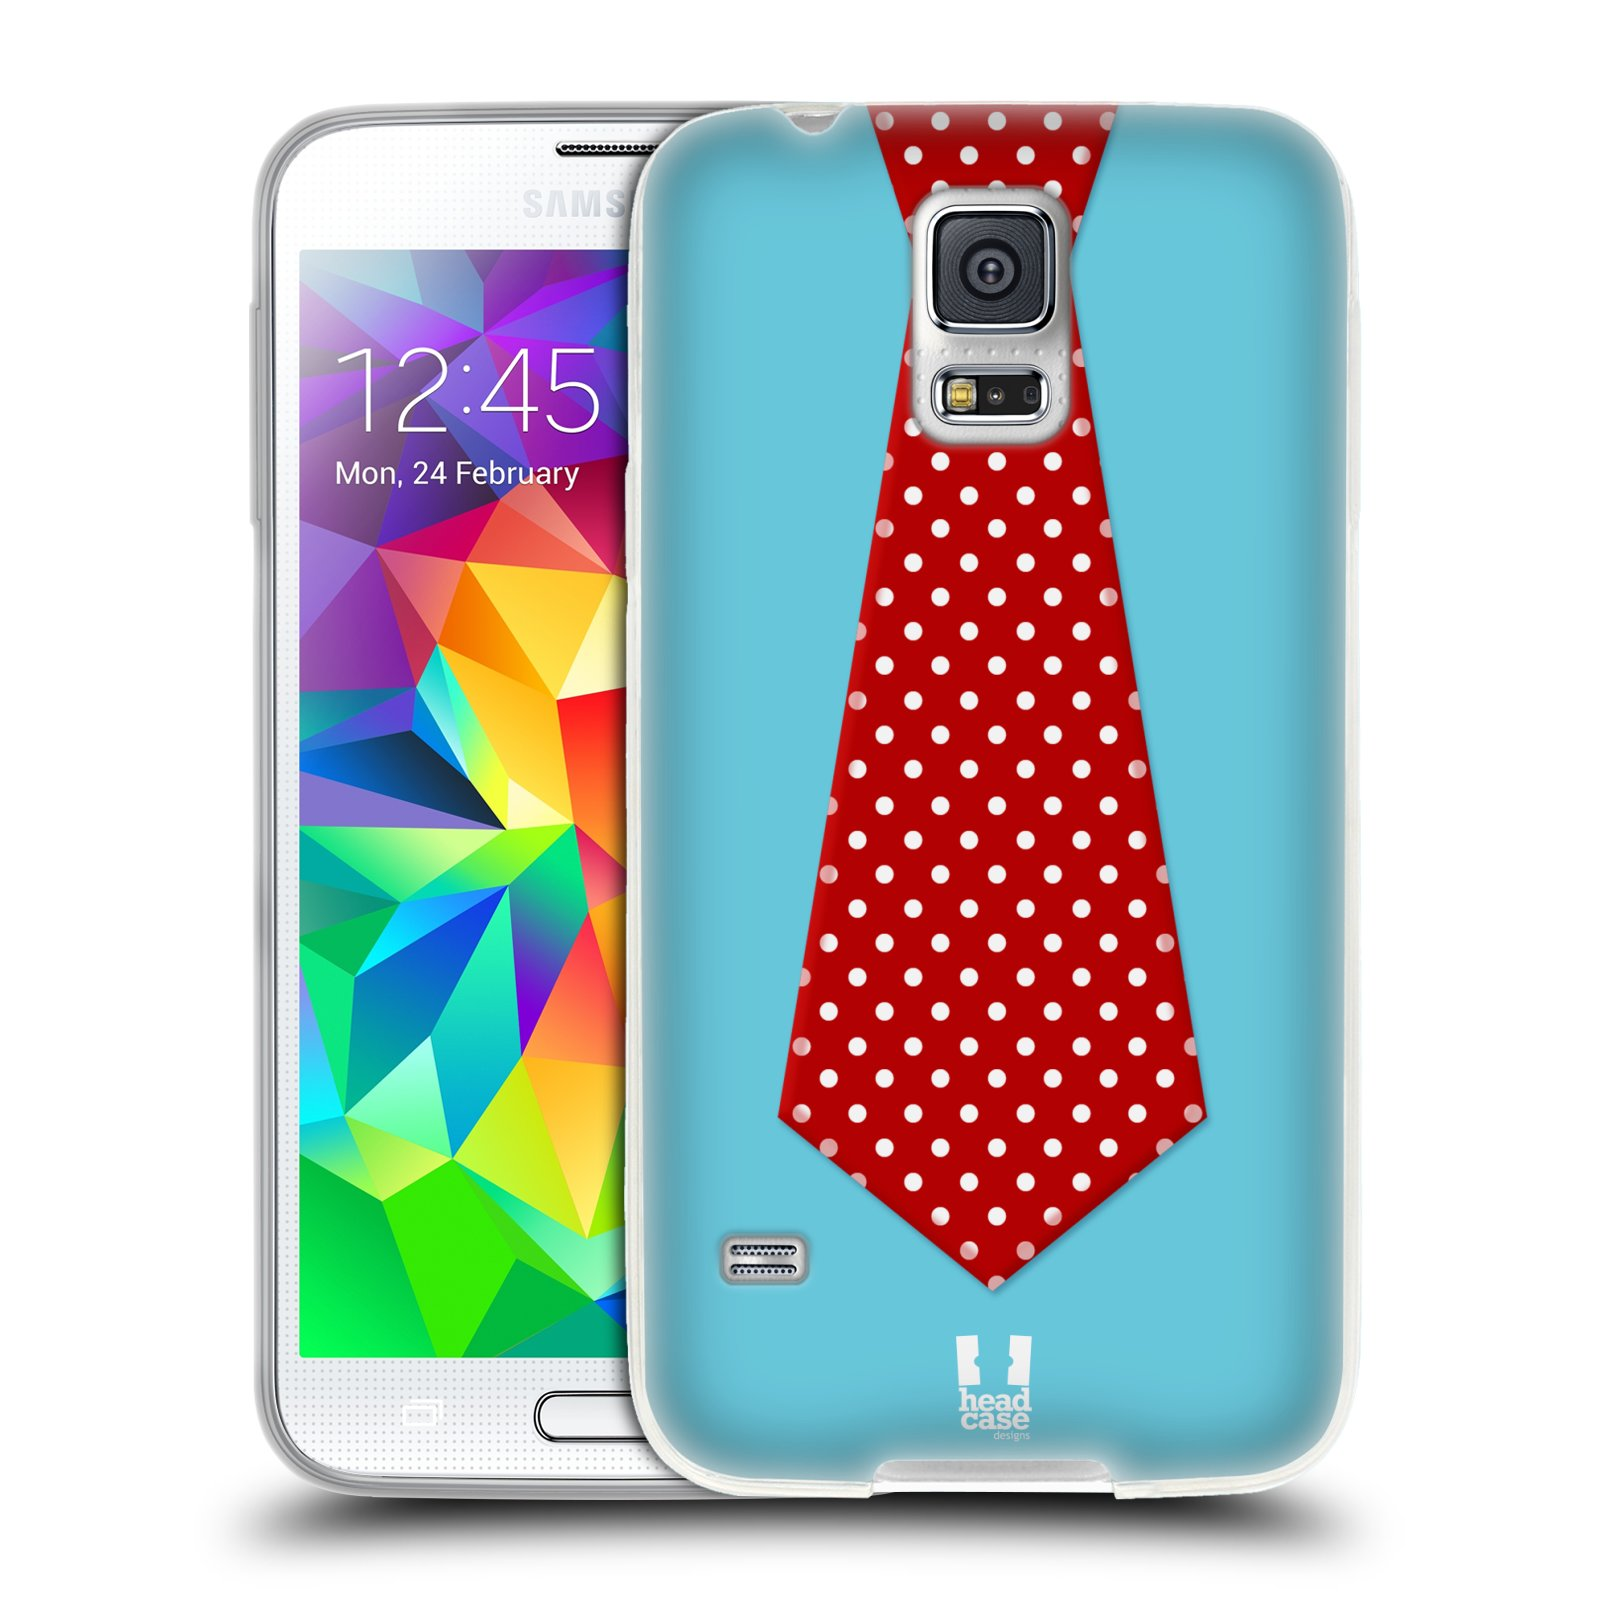 HEAD CASE DESIGNS FESTIVE-TIES SOFT GEL CASE FOR SAMSUNG PHONES 1